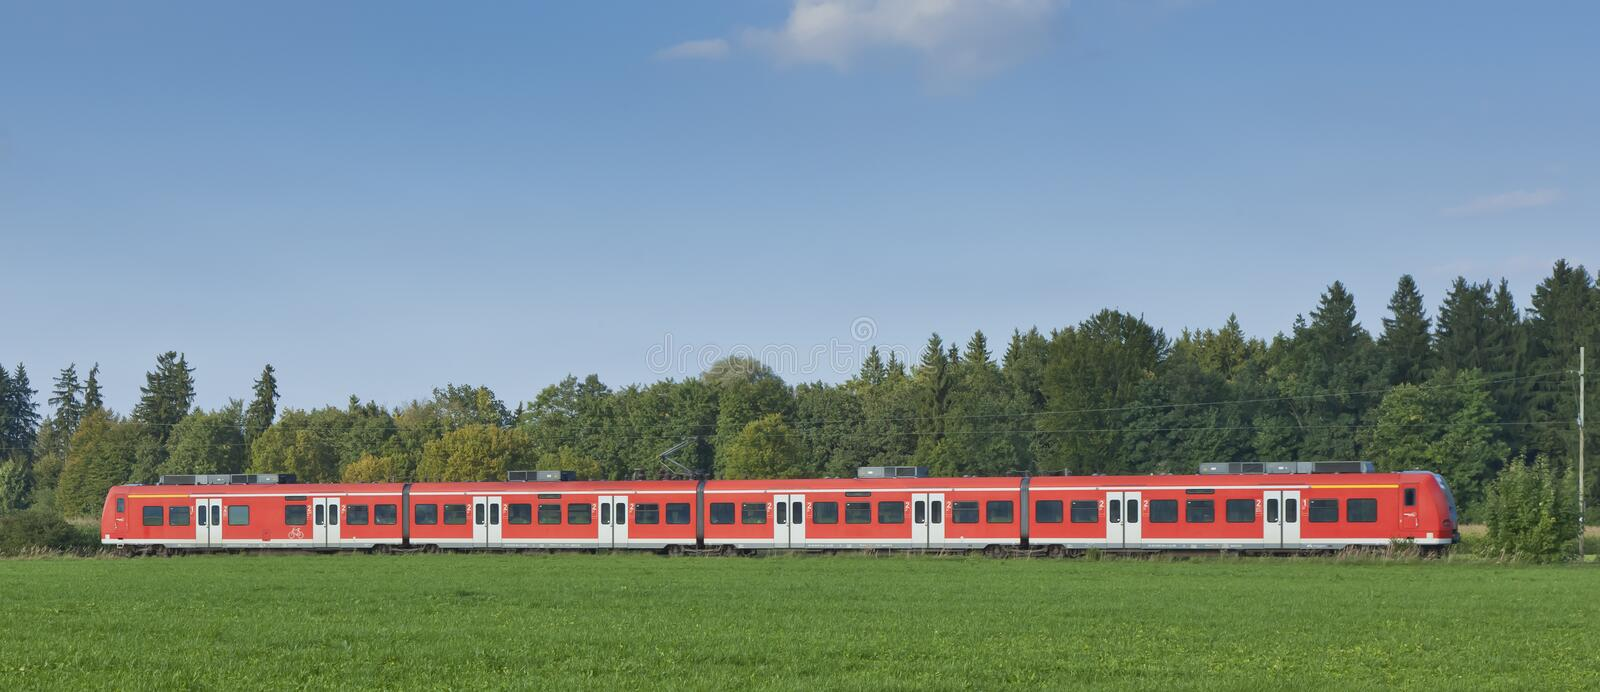 Red train. An image of a typical red train in Germany Bavaria royalty free stock photos